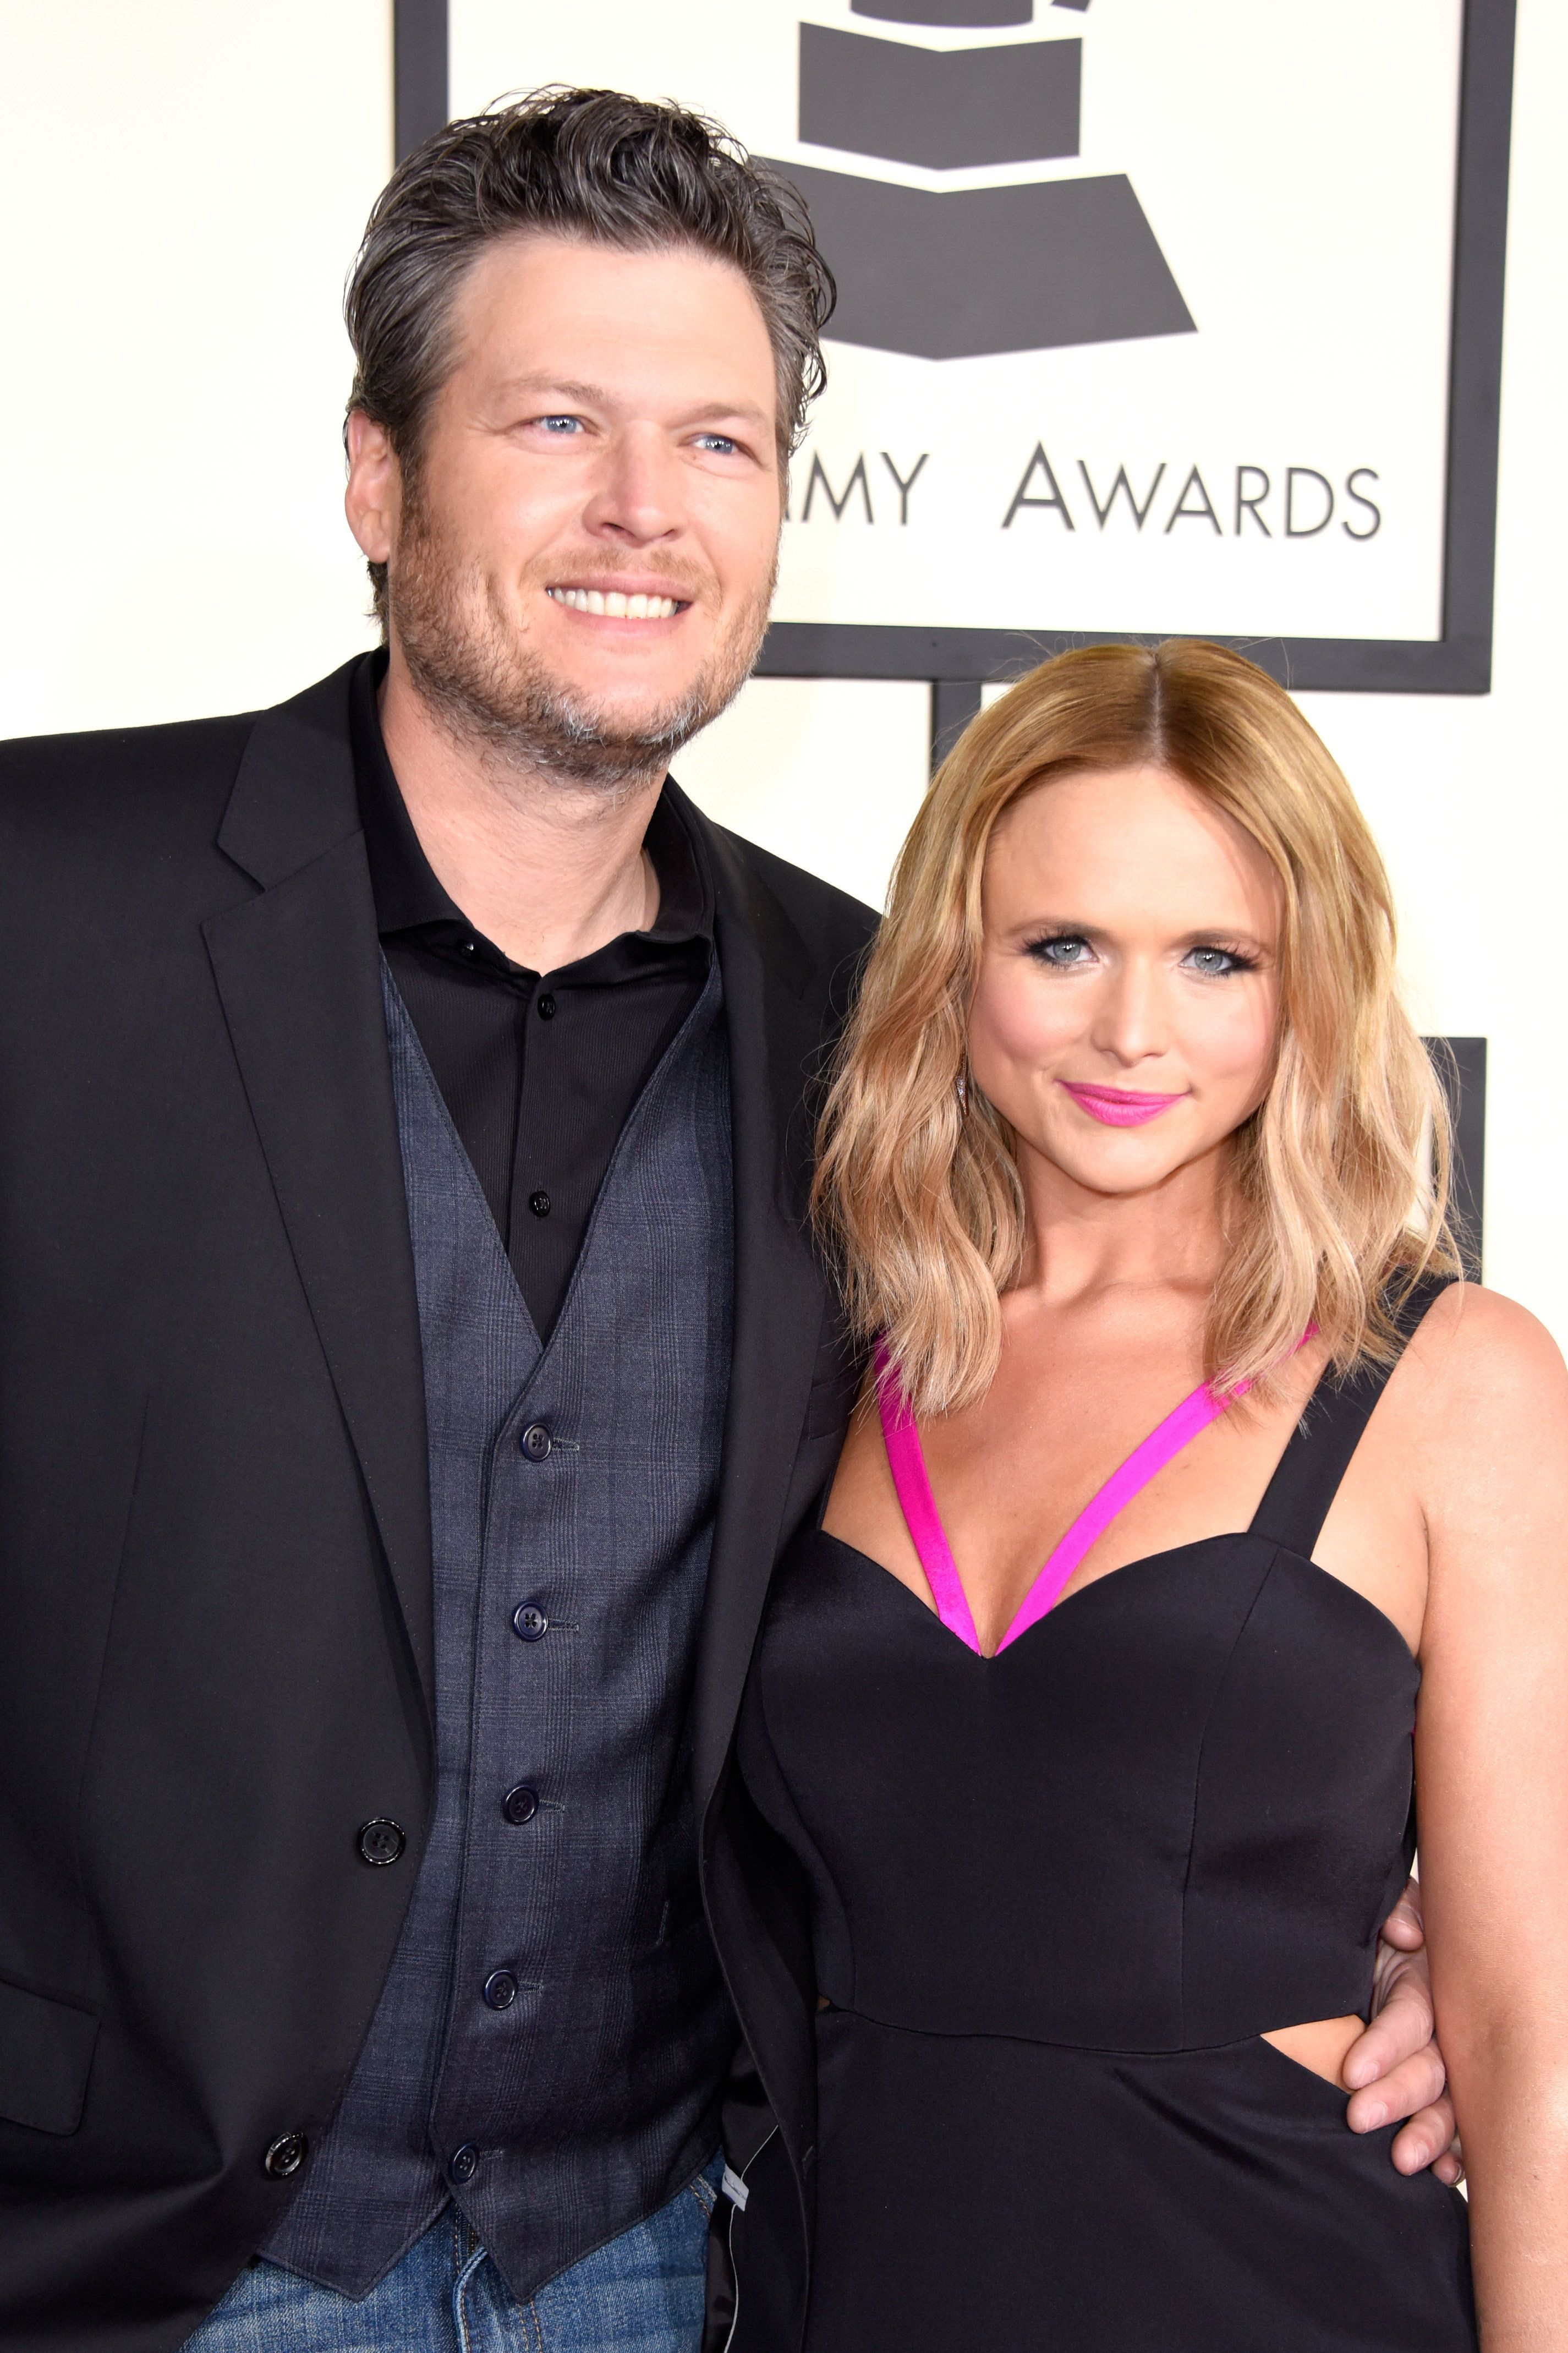 LOS ANGELES, CA - FEBRUARY 08:  Recording artists Blake Shelton (L) and Miranda Lambert attend The 57th Annual GRAMMY Awards at the STAPLES Center on February 8, 2015 in Los Angeles, California.  (Photo by Jeff Vespa/WireImage)